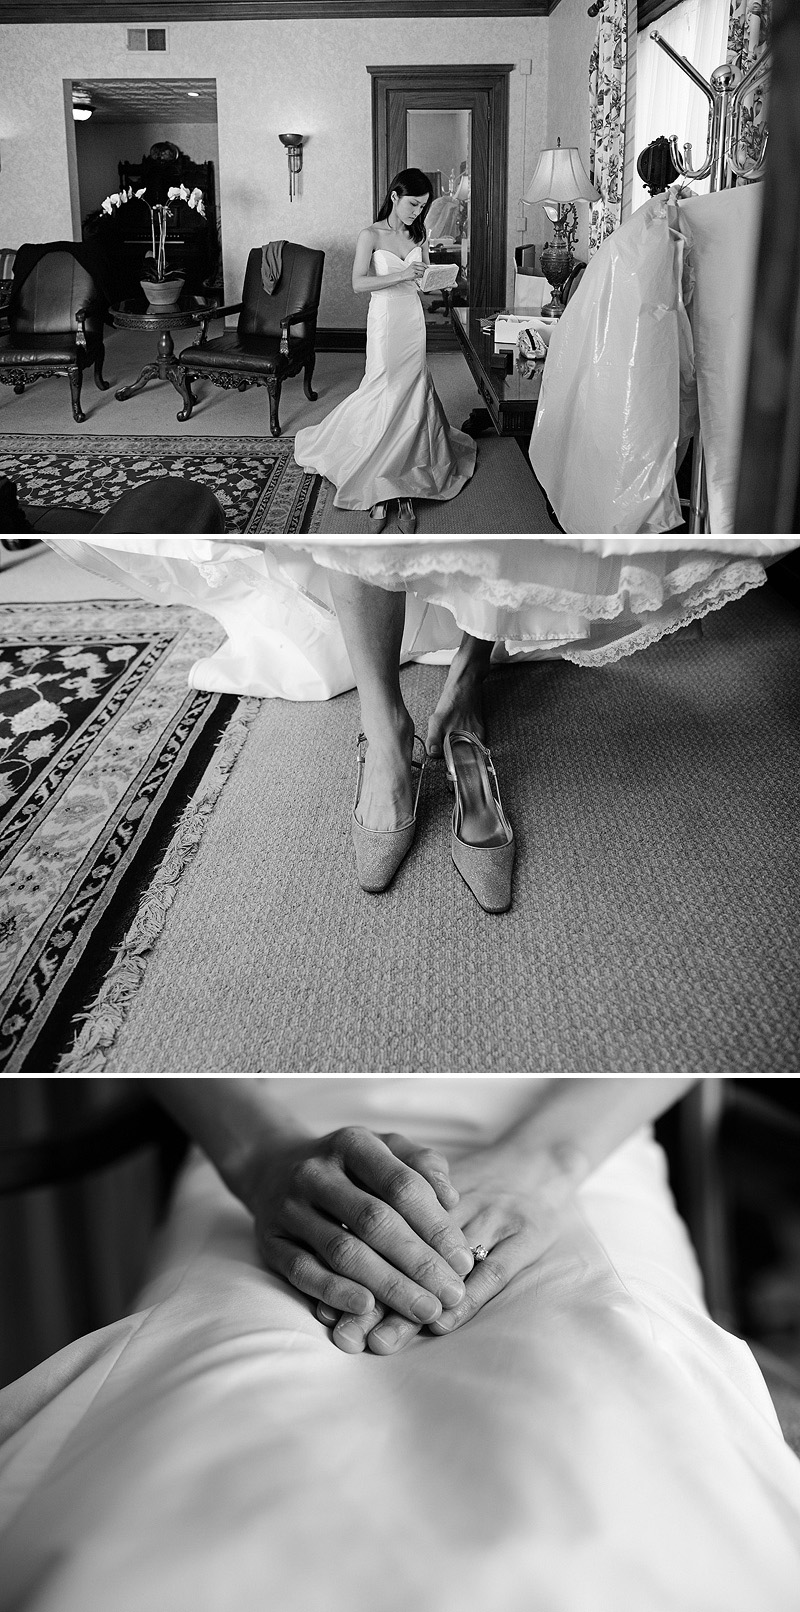 Bride getting ready for her wedding at Loose Mansion.